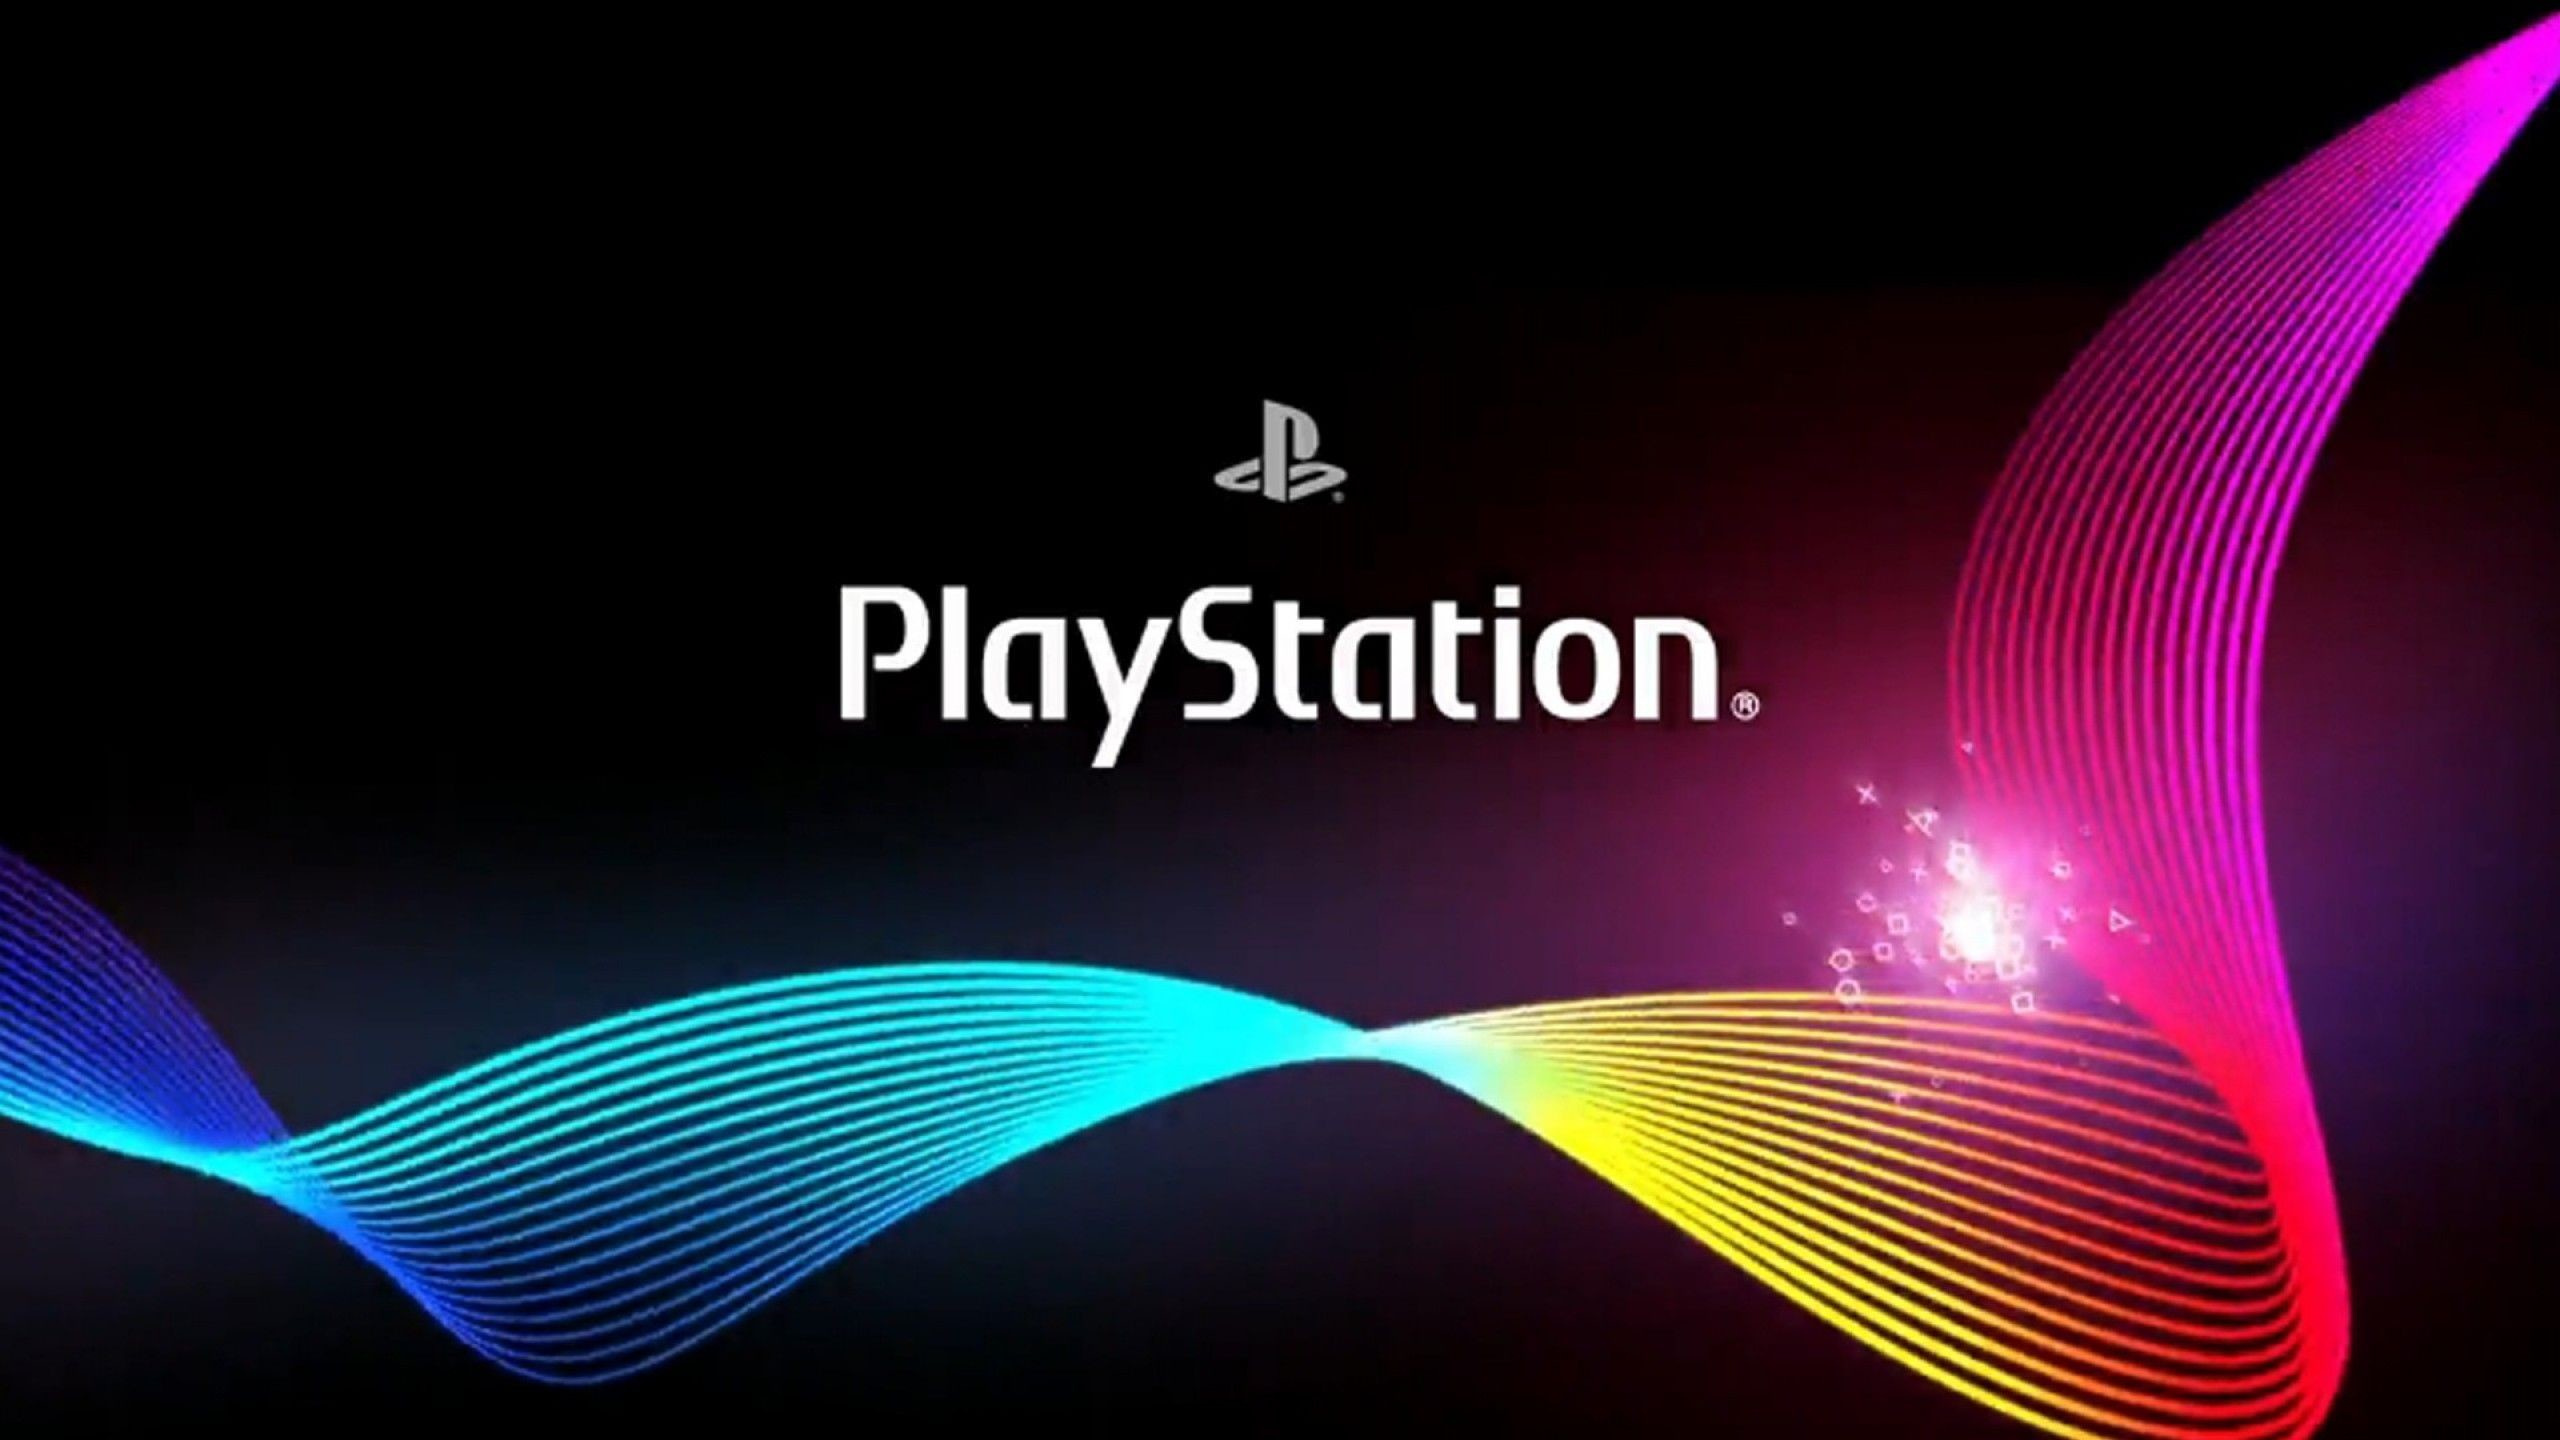 Rumour: 'Beastly' PS5 Dev Kits in the Wild, But Not Due Until 2020